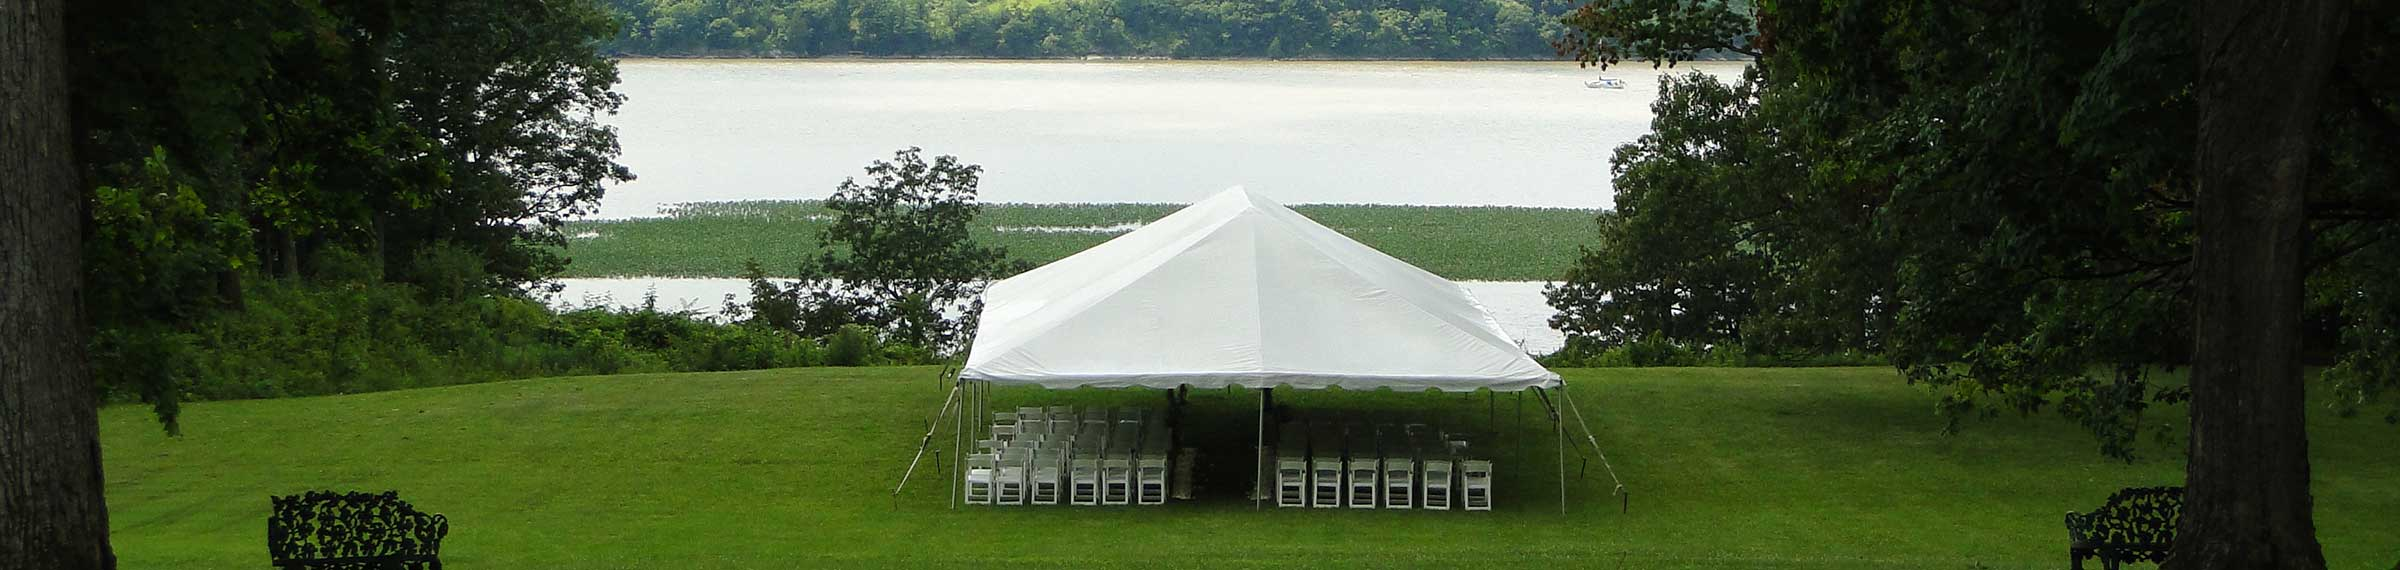 Columbia Tent Rentals provides a list of preferred event vendors to make your special event perfect.